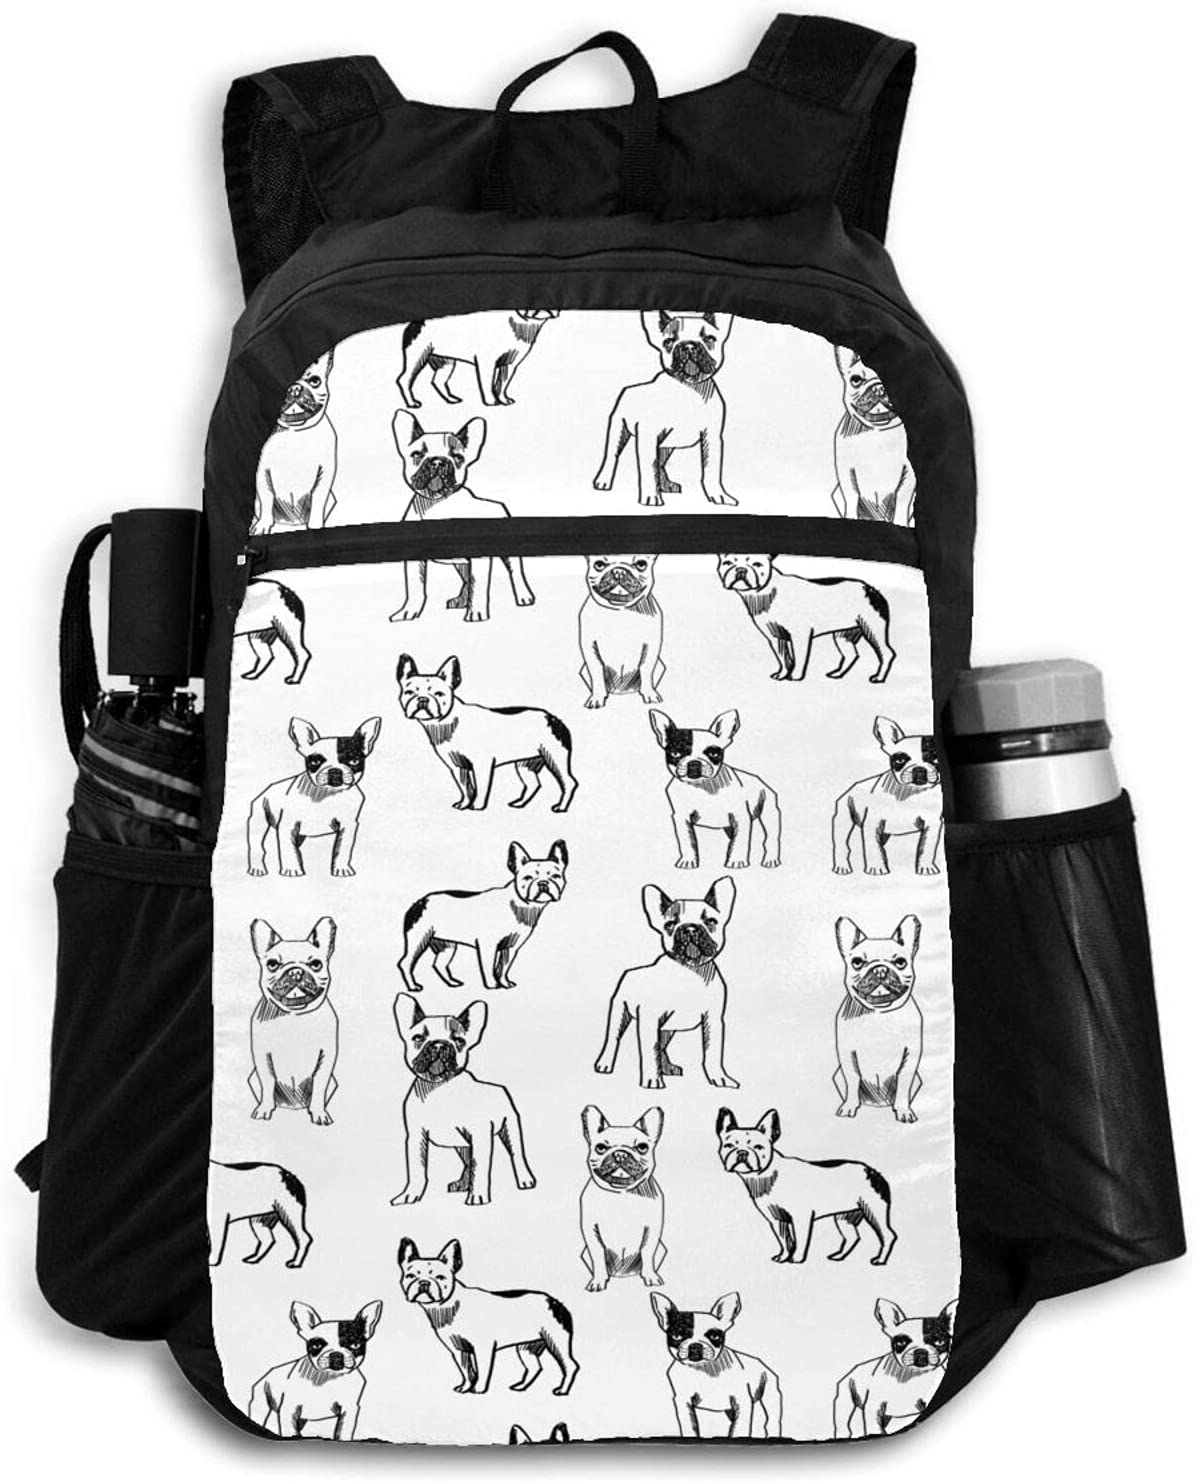 Zolama French Bulldog Backpacks for OFFer Men Packable 2021 spring and summer new Dayp Cute Women